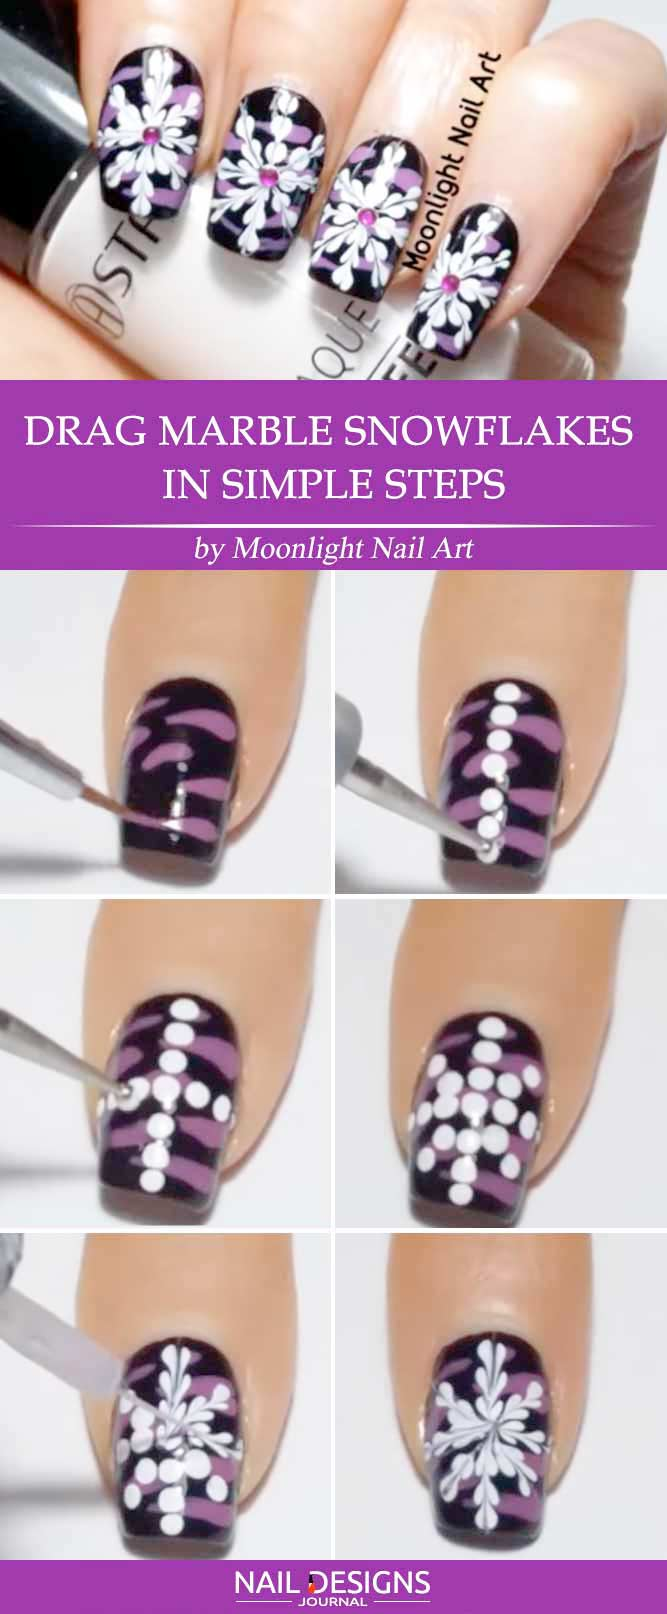 10 easy tutorials on snowflake nails art naildesignsjournal drag marble snowflakes in simple steps prinsesfo Choice Image